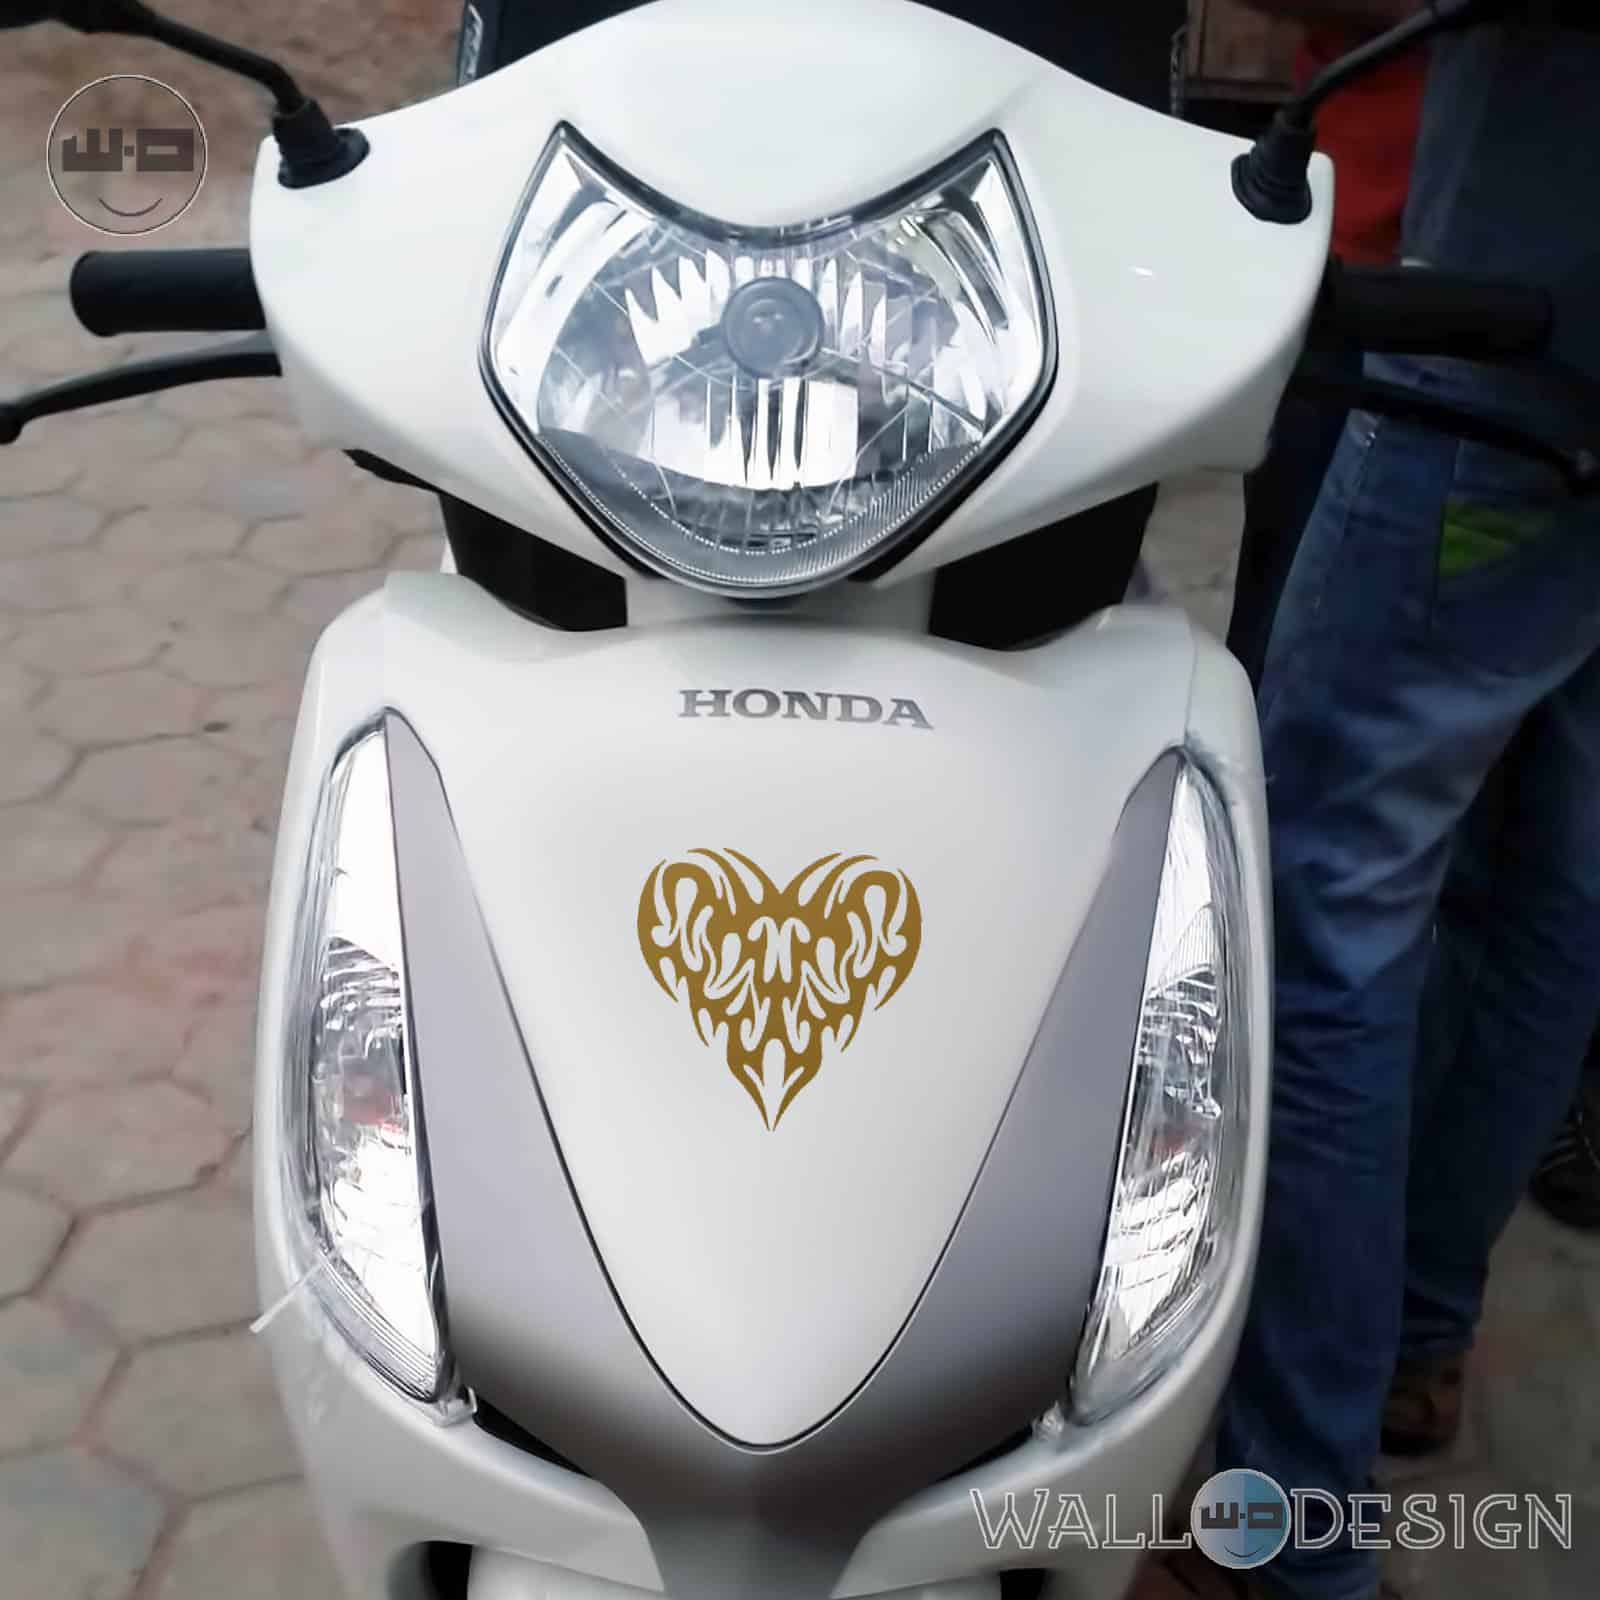 Wdc02017b walldesign scooter stickers pump my heart with love gold jpg